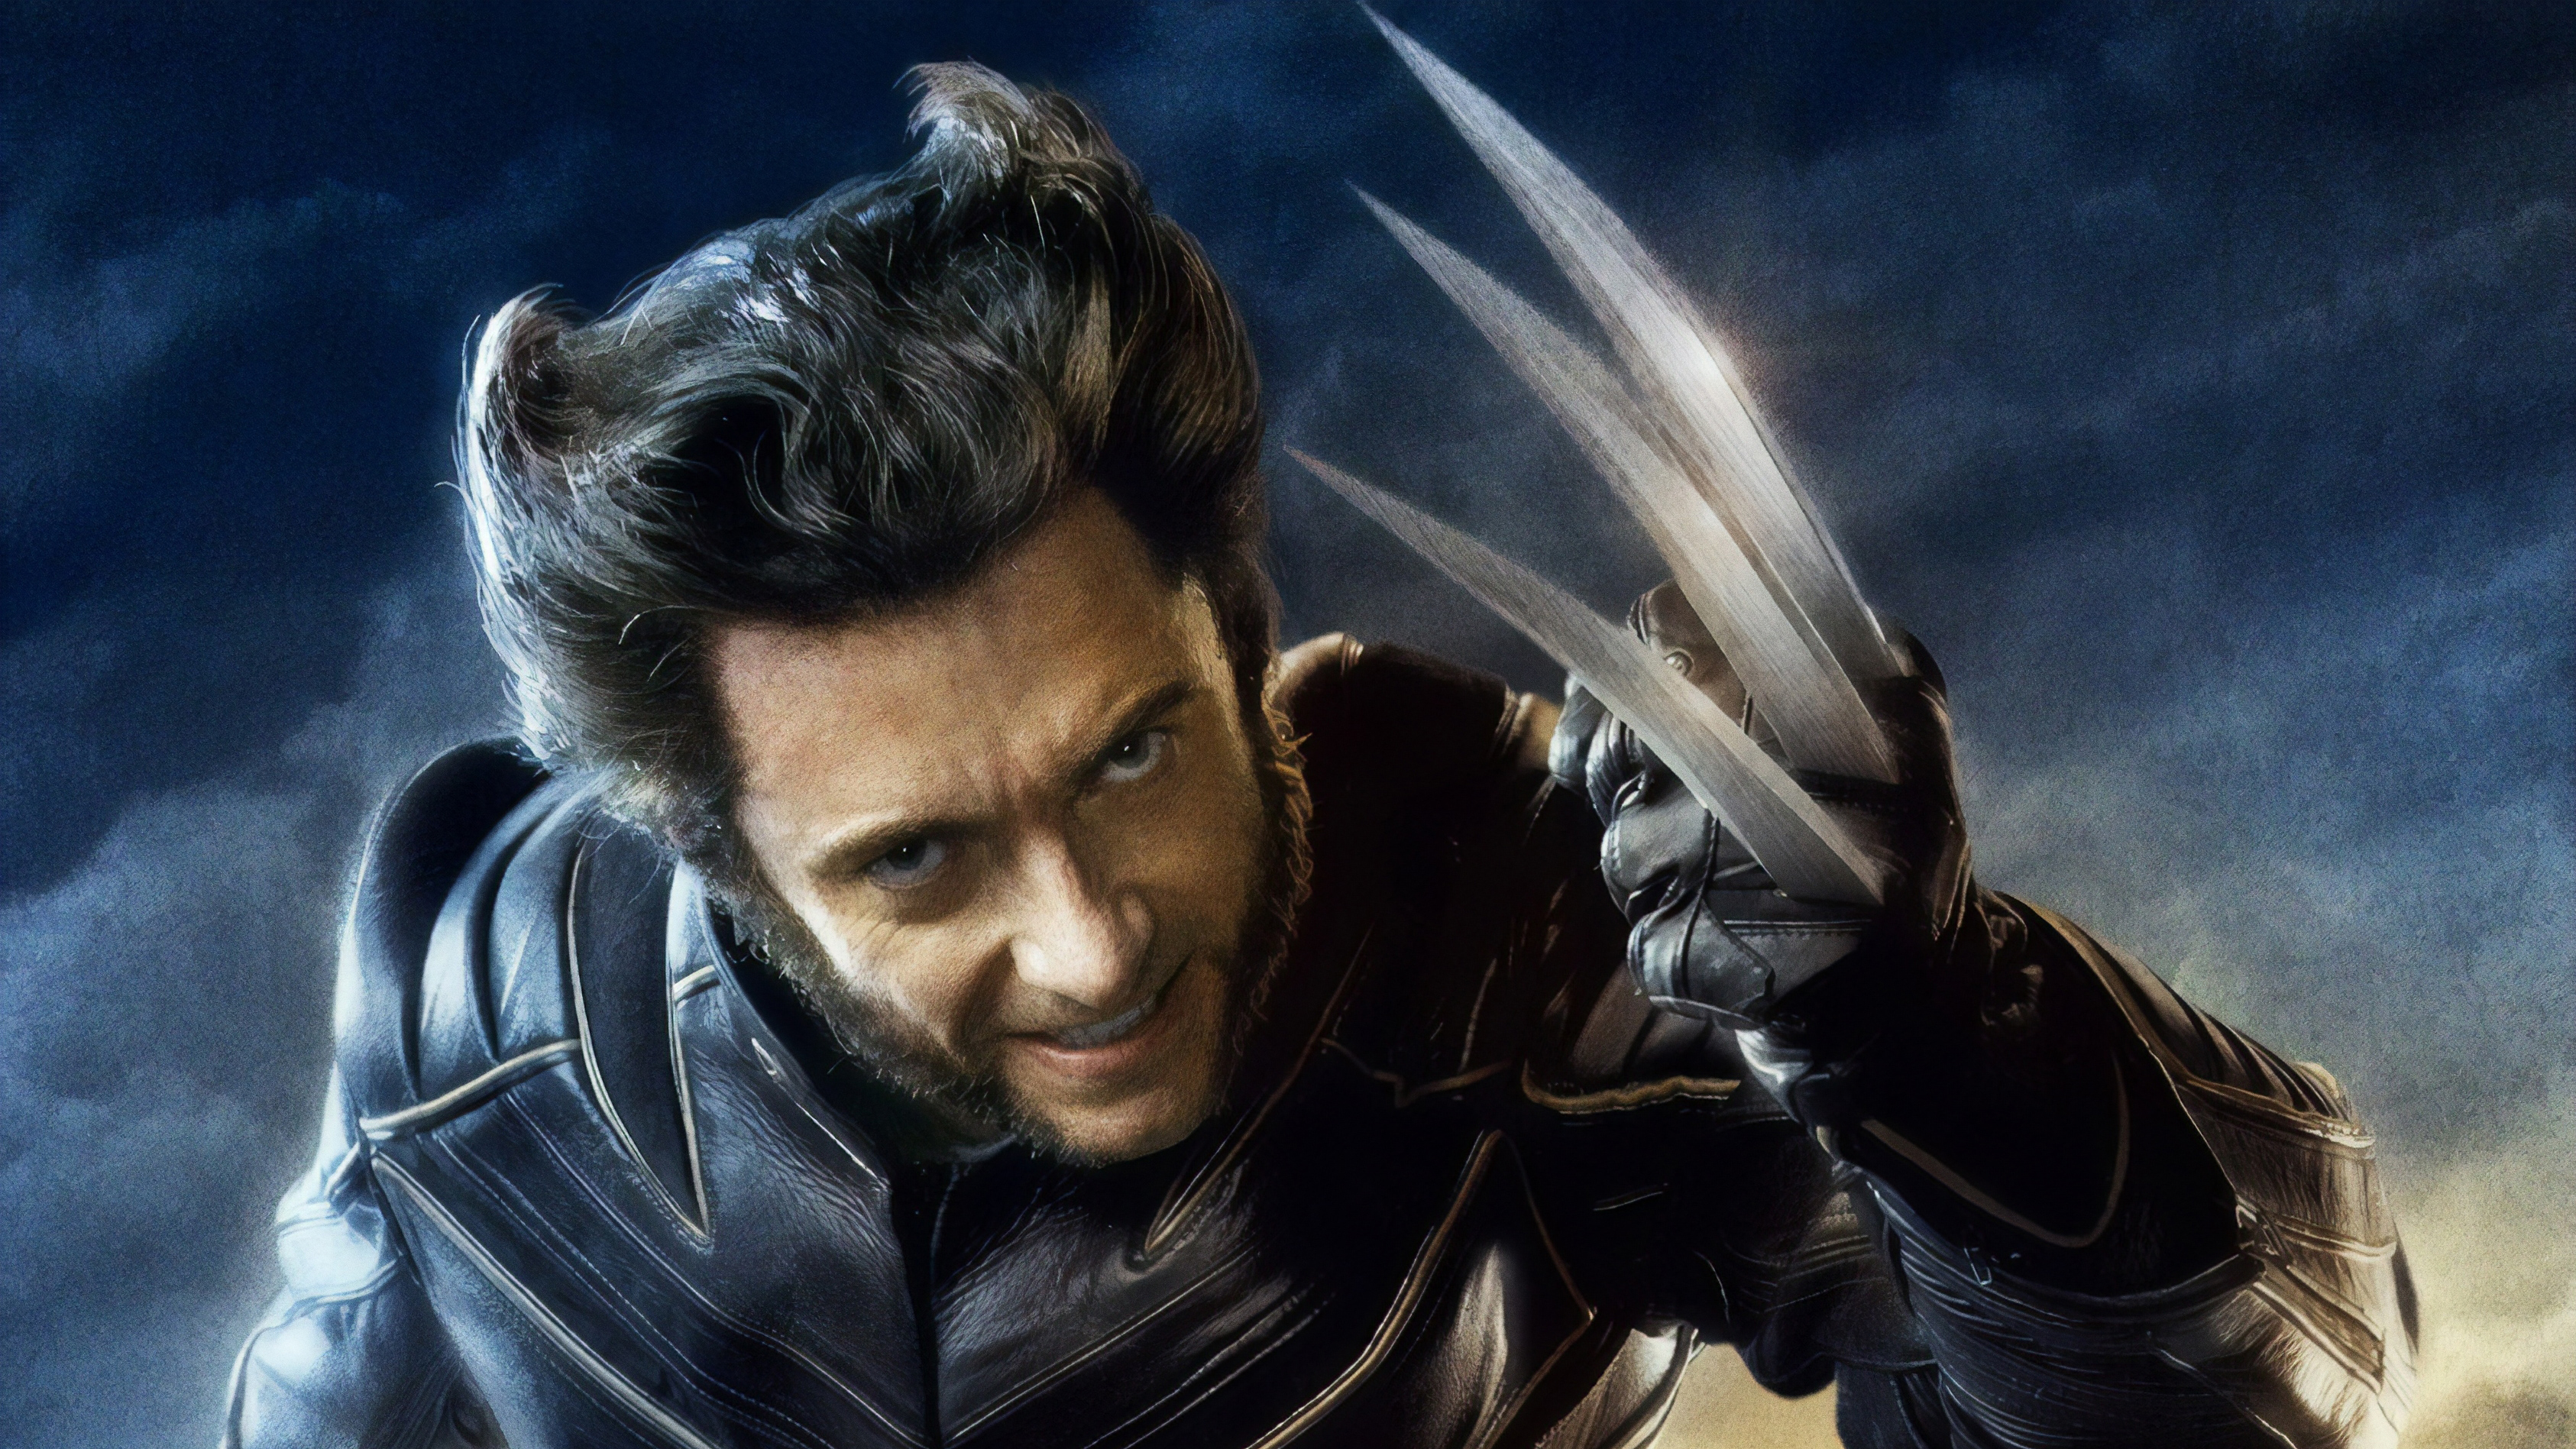 1920x1080 Wolverine X Men The Last Stand Laptop Full Hd 1080p Hd 4k Wallpapers Images Backgrounds Photos And Pictures